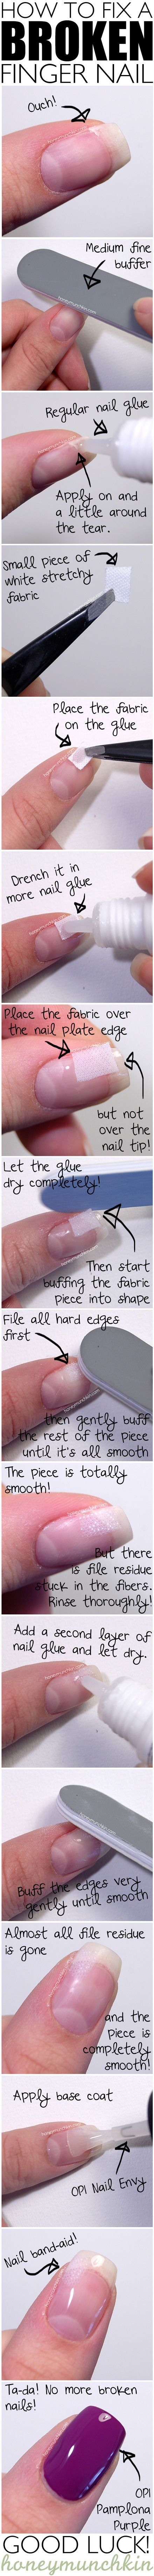 23 Creative Nails Tutorials:  how to fix a broken nail with nail glue, white fabric and clear coat and medium file buffer. Great idea instead of having to cut or pull the tip off.